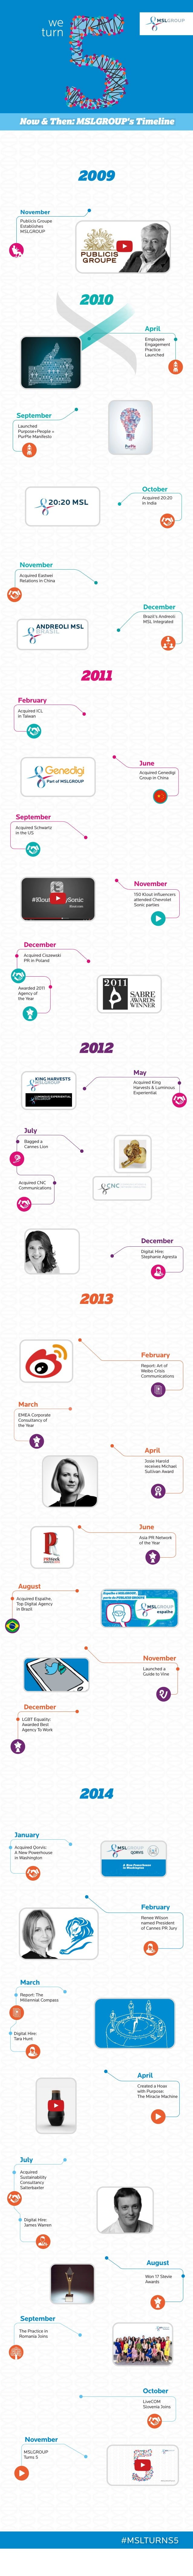 Infographic: MSLGROUP Turns 5